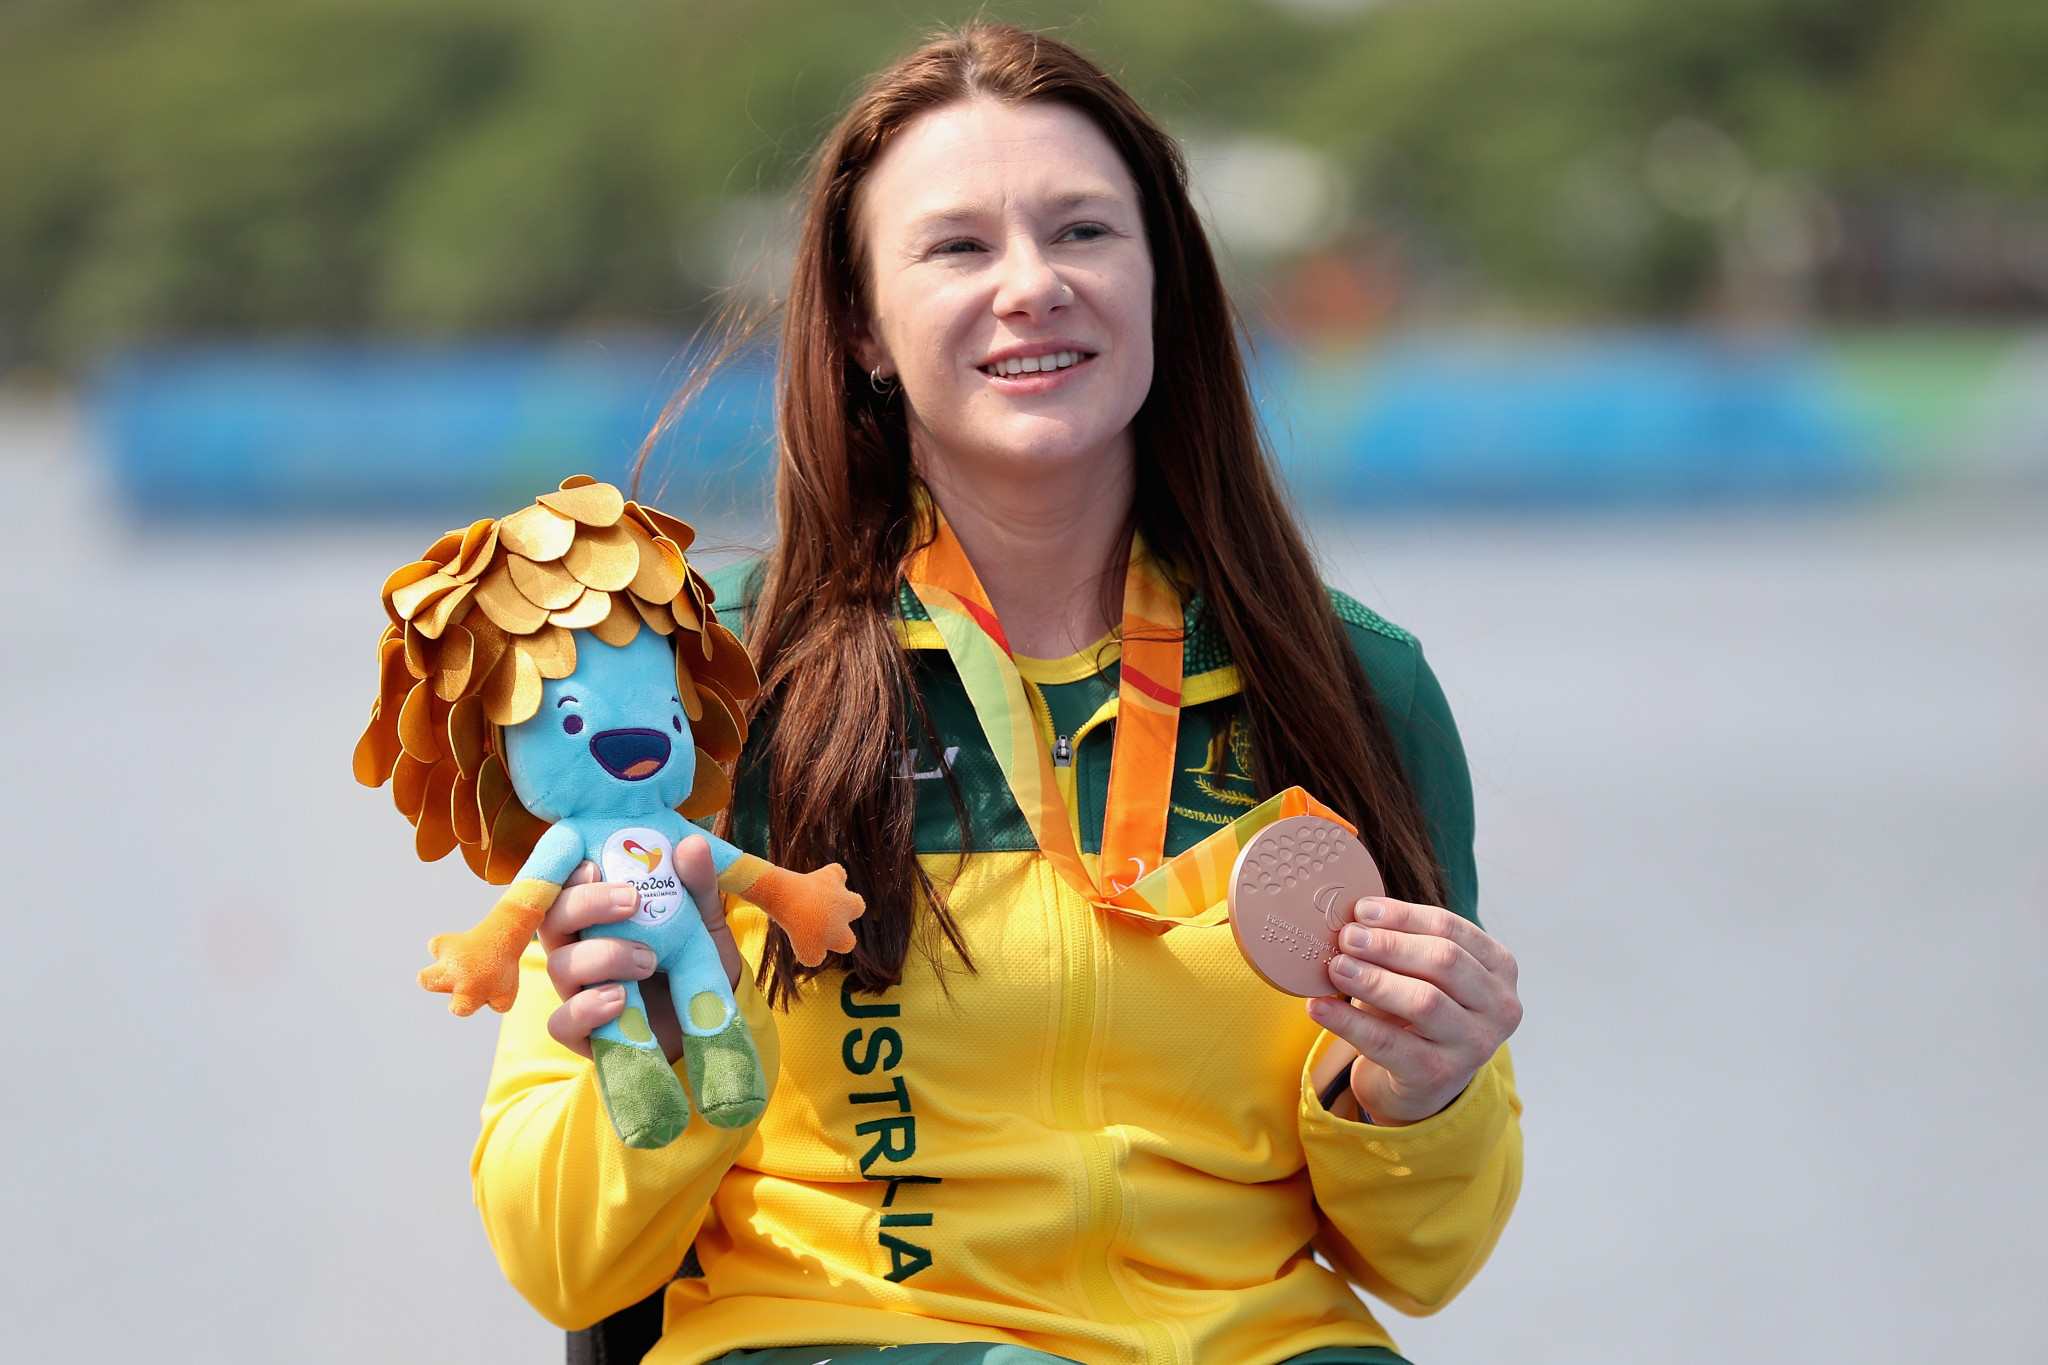 Susan Seipel, a Rio 2016 bronze medallist, also won VL2 world titles in 2015 and 2017 ©Getty Images